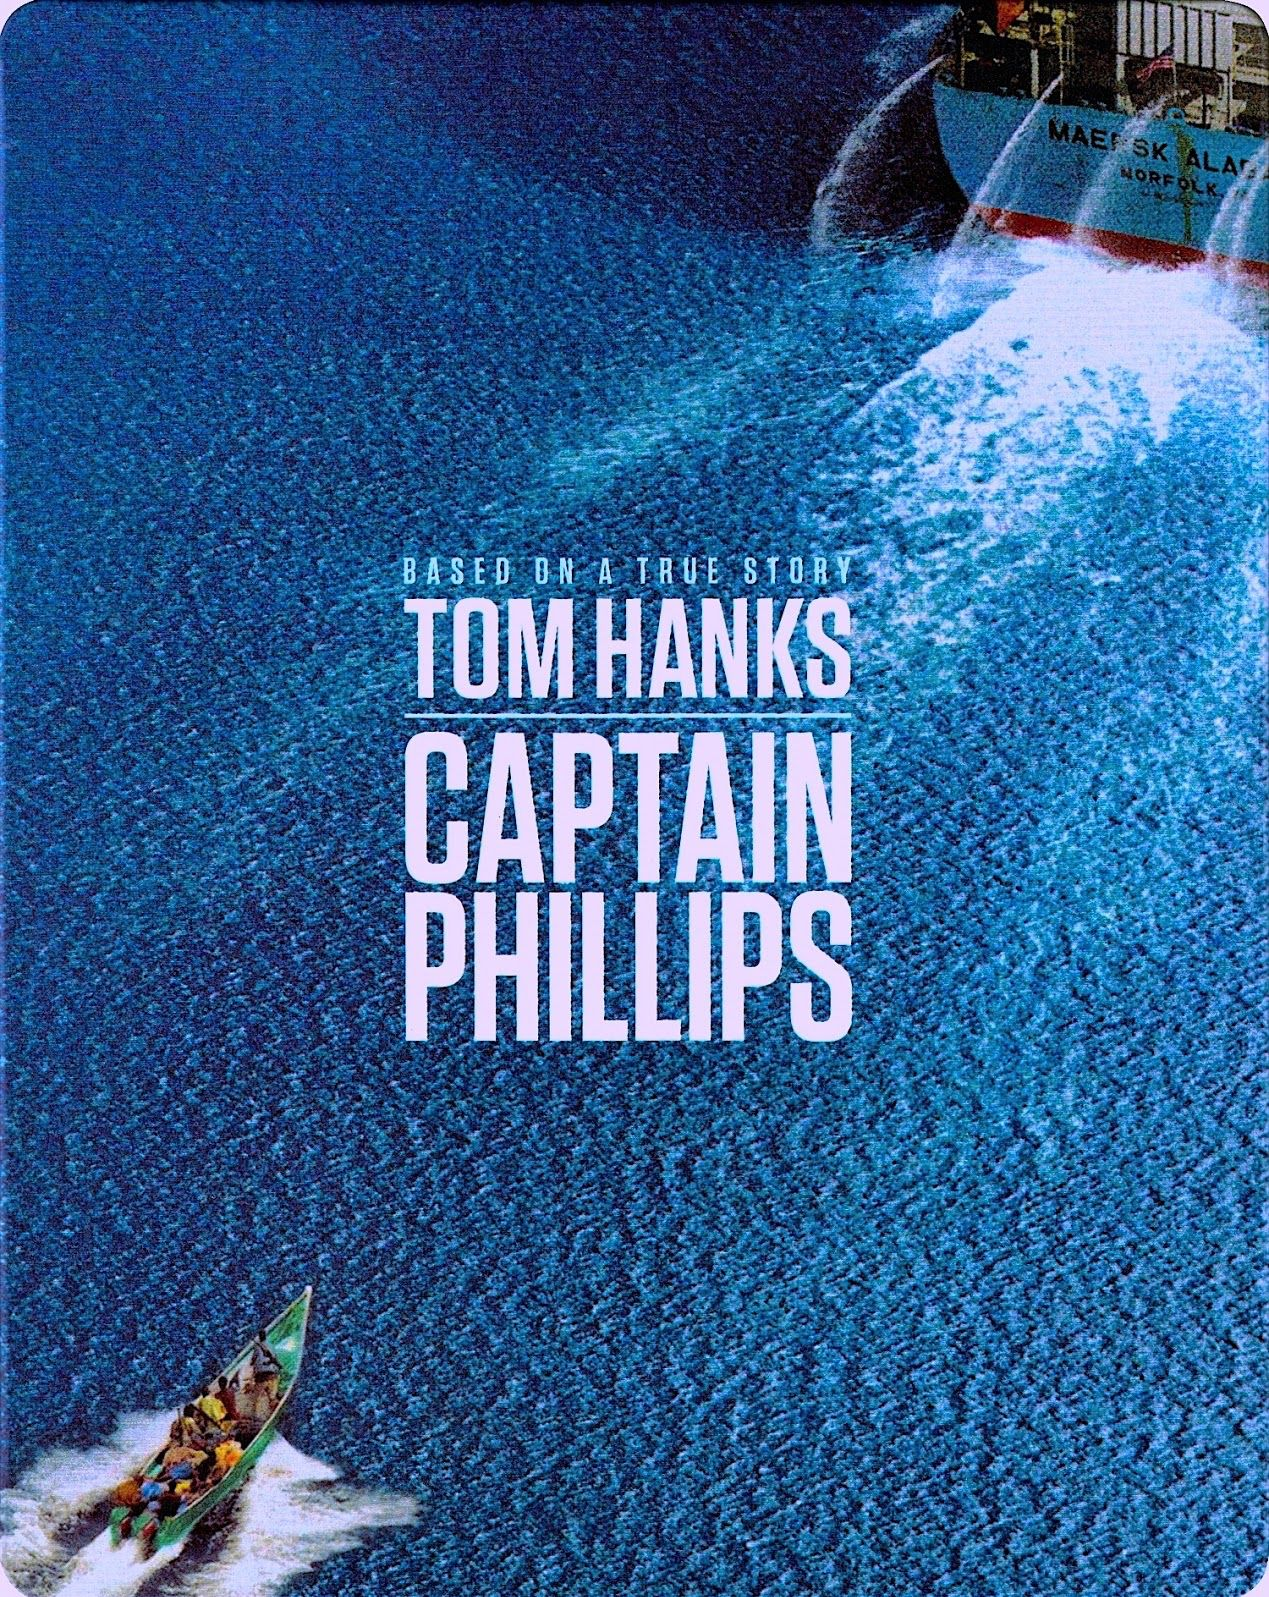 Captain Phillips Captain, Phillips, Alternative movie